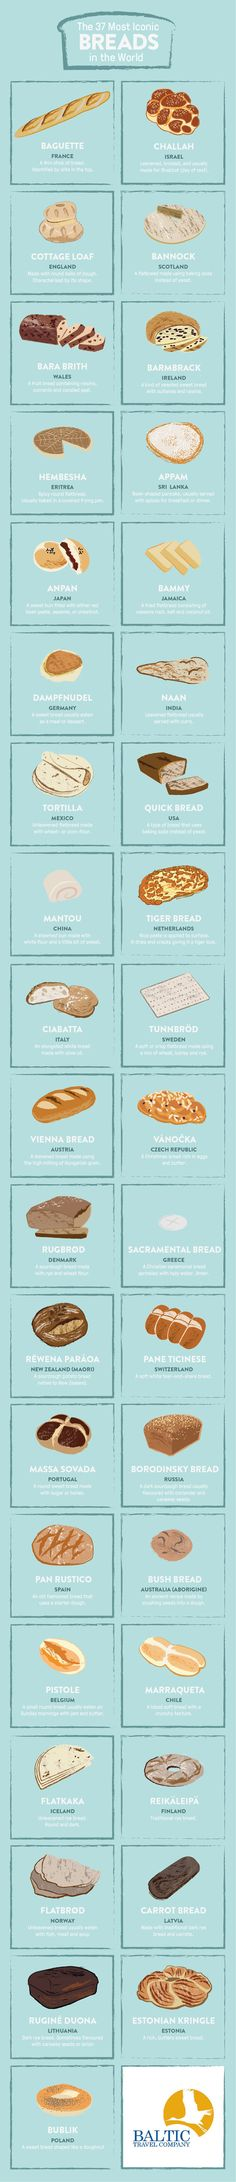 This is how the rest of the world eats bread